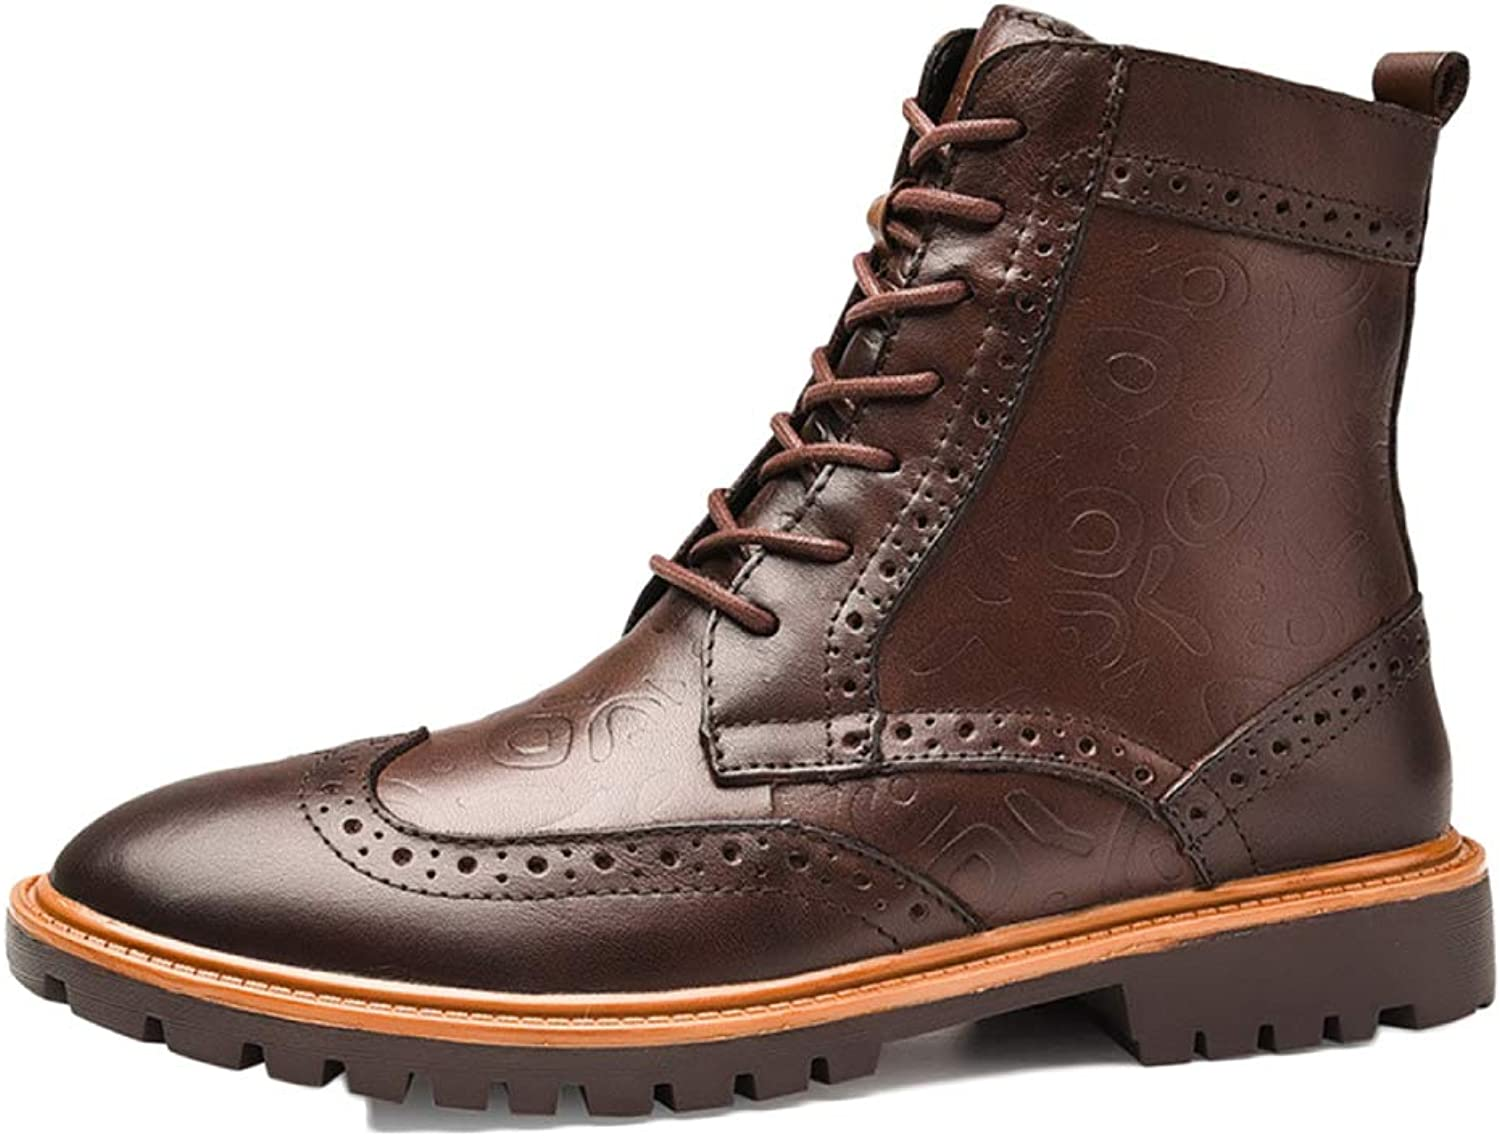 Safety Boots Dewalt Mens Lightweight Waterproof Trainers shoes High-top Leather Boots First Layer of Leather Martin Boots